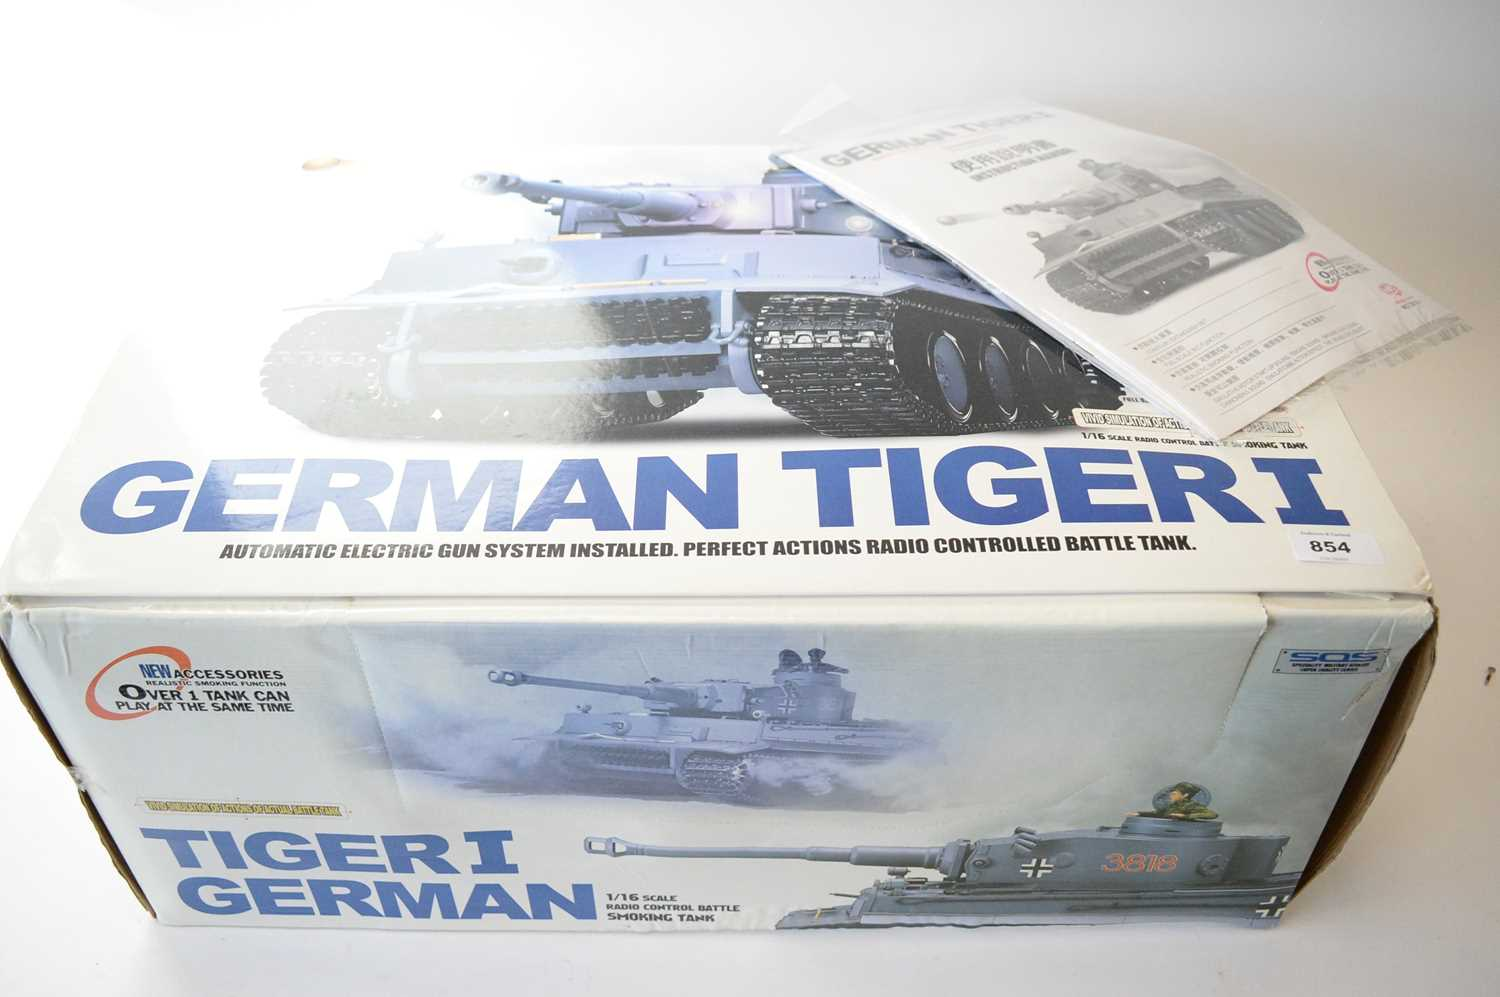 Lot 854 - A radio control 1:16 scale model of a German Tiger tank.